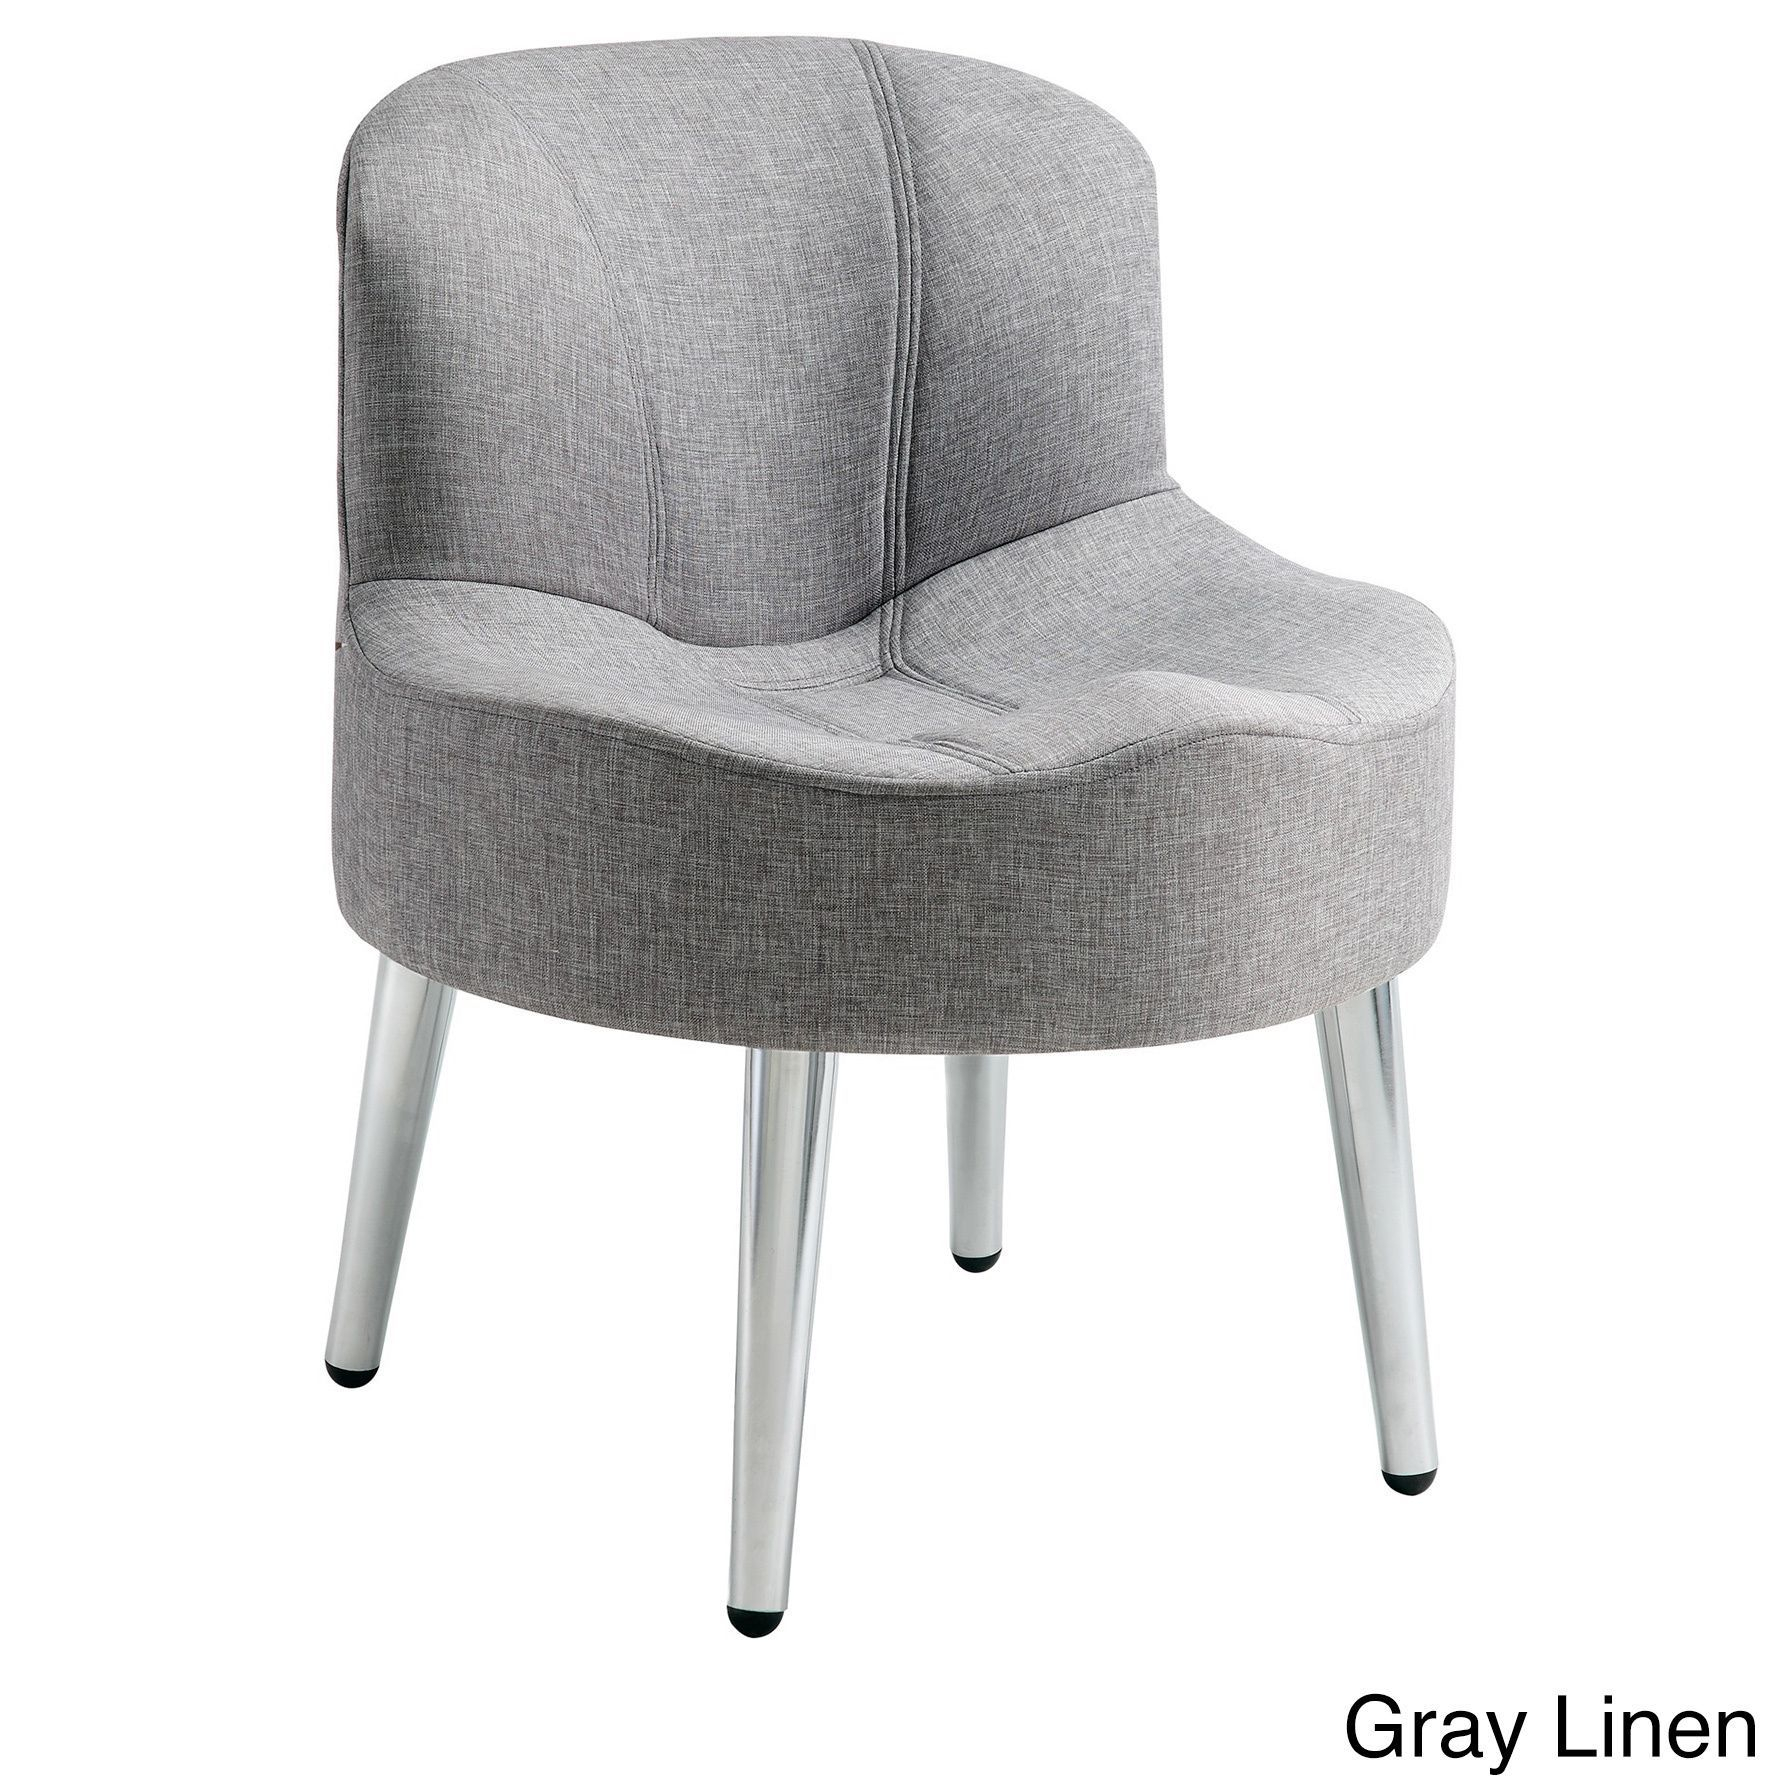 Featured Image of Chill Swivel Chairs With Metal Base